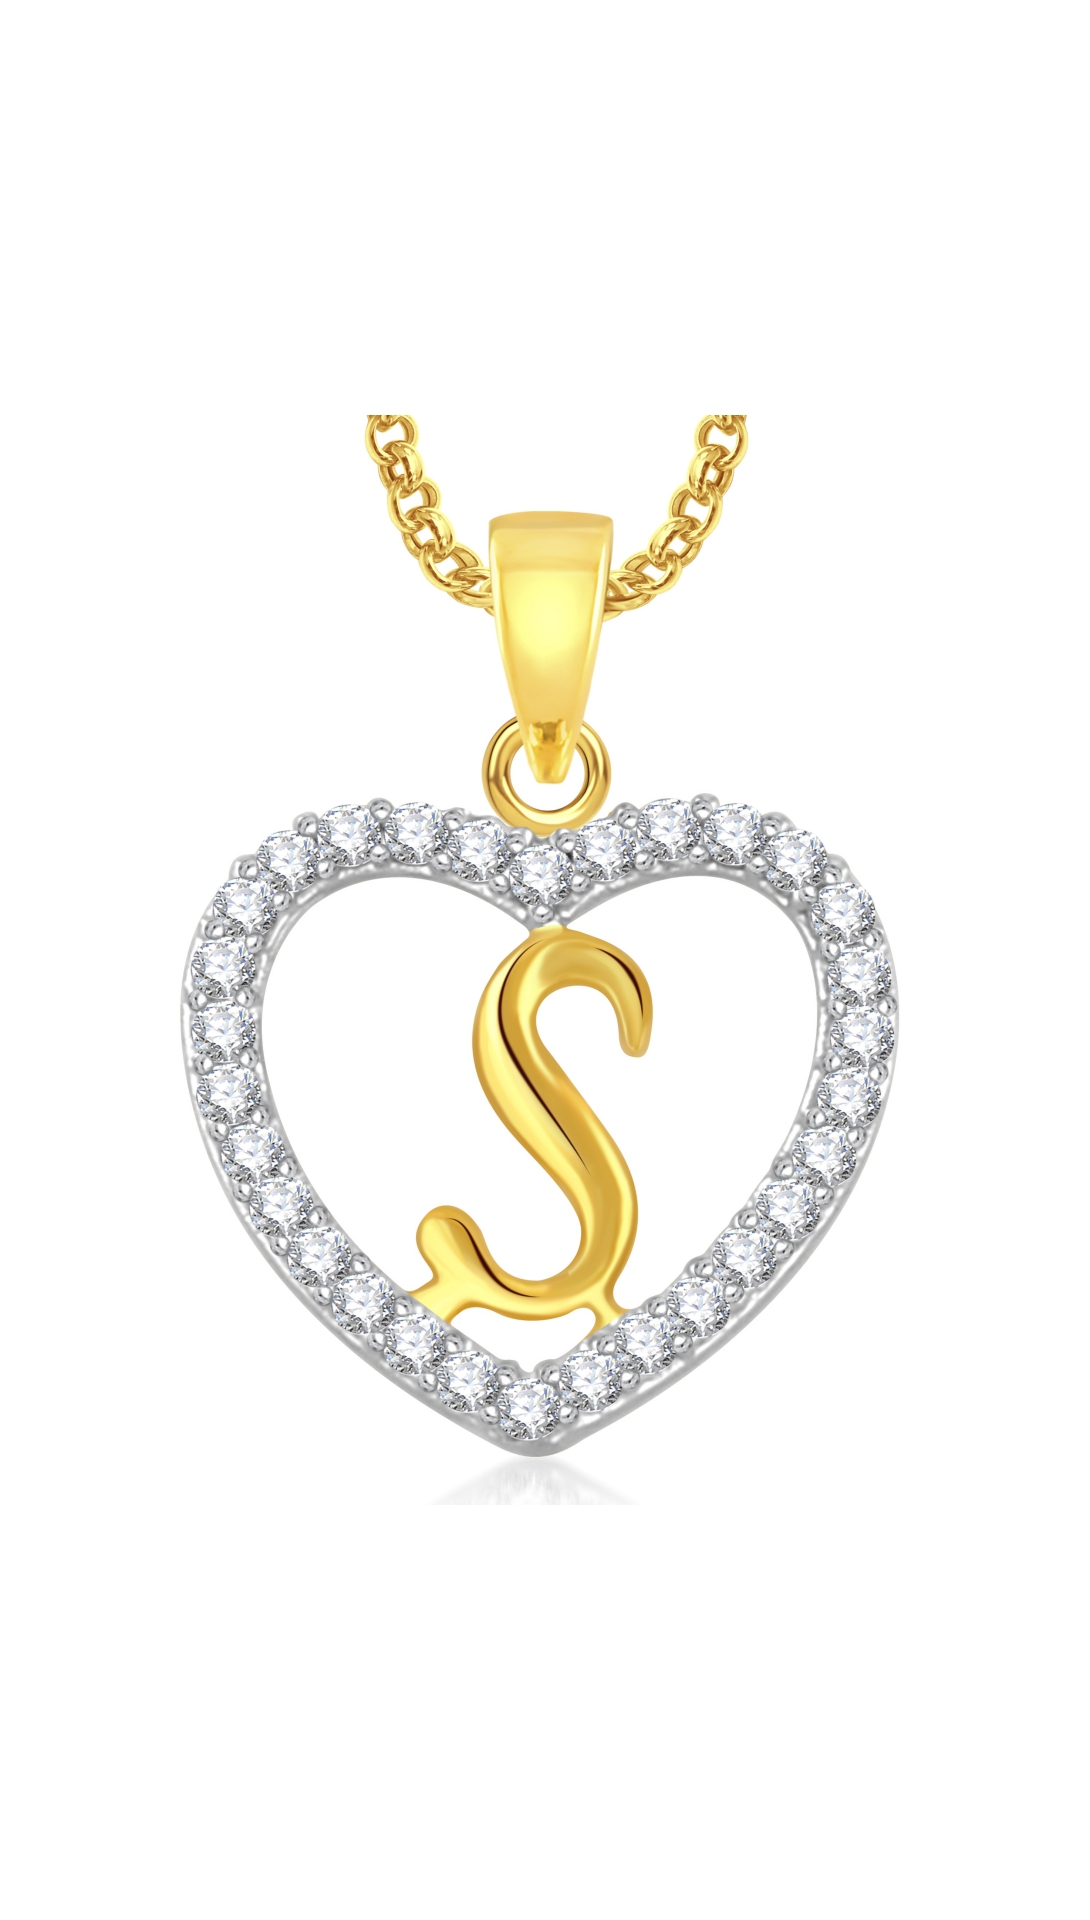 gold letter online locket prices chains amazon chain cz american in for and r men plated india at dp diamond buy meenaz women with heart low pendant